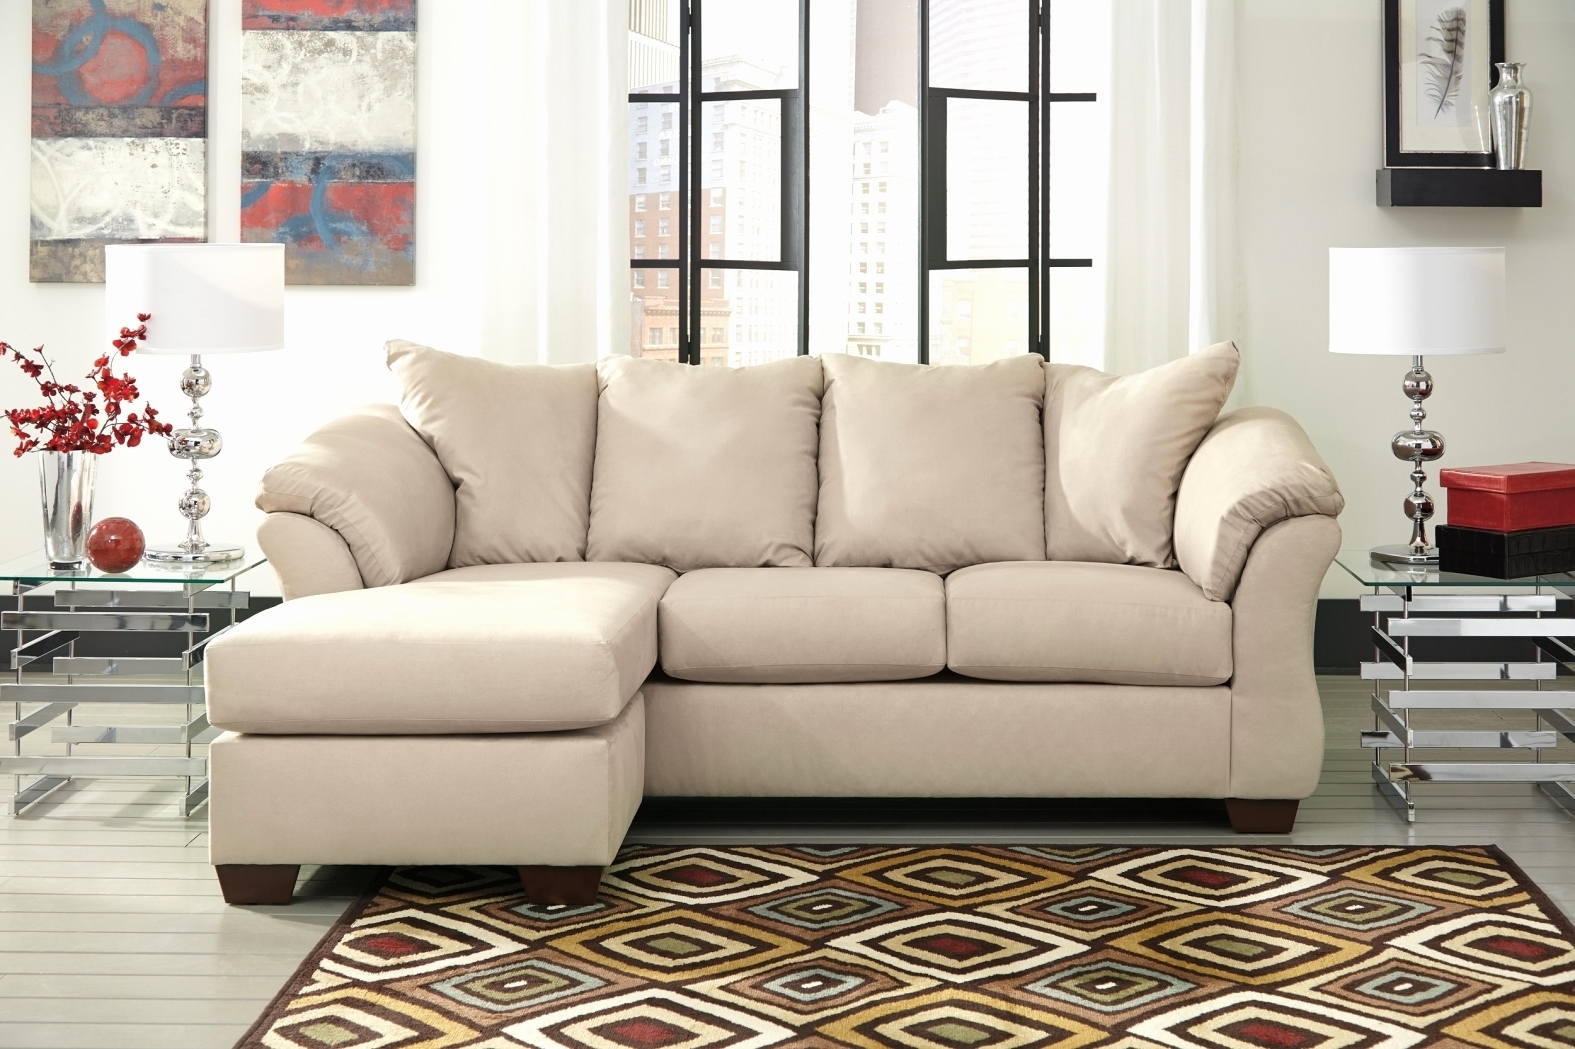 Recent Okc Sectional Sofas Inside 33 Majestic Sectional Sofas Okc Pictures – Sectional Sofa Design Ideas (View 14 of 20)